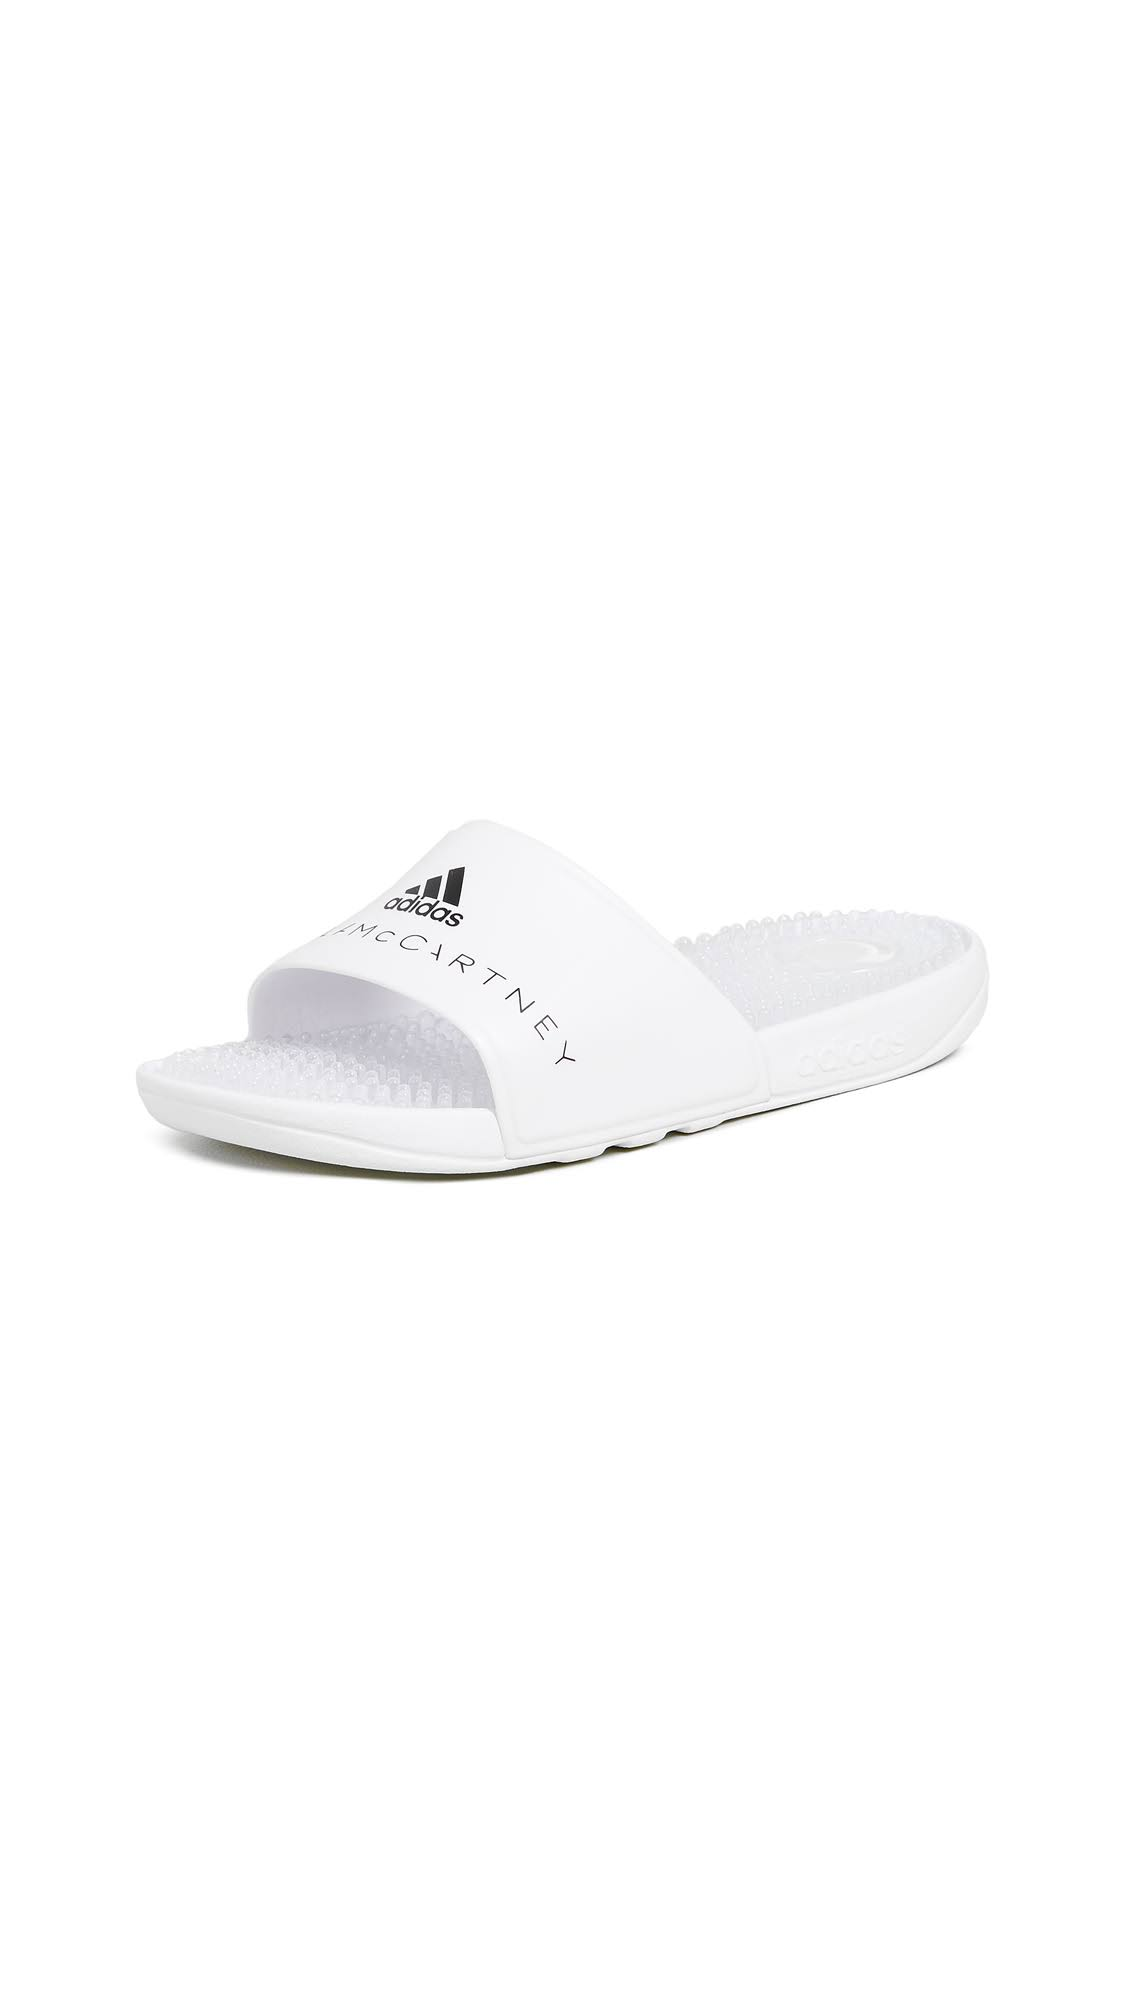 Slides Blanco Stella By W Adissage Adidas Mccartney XanqHU